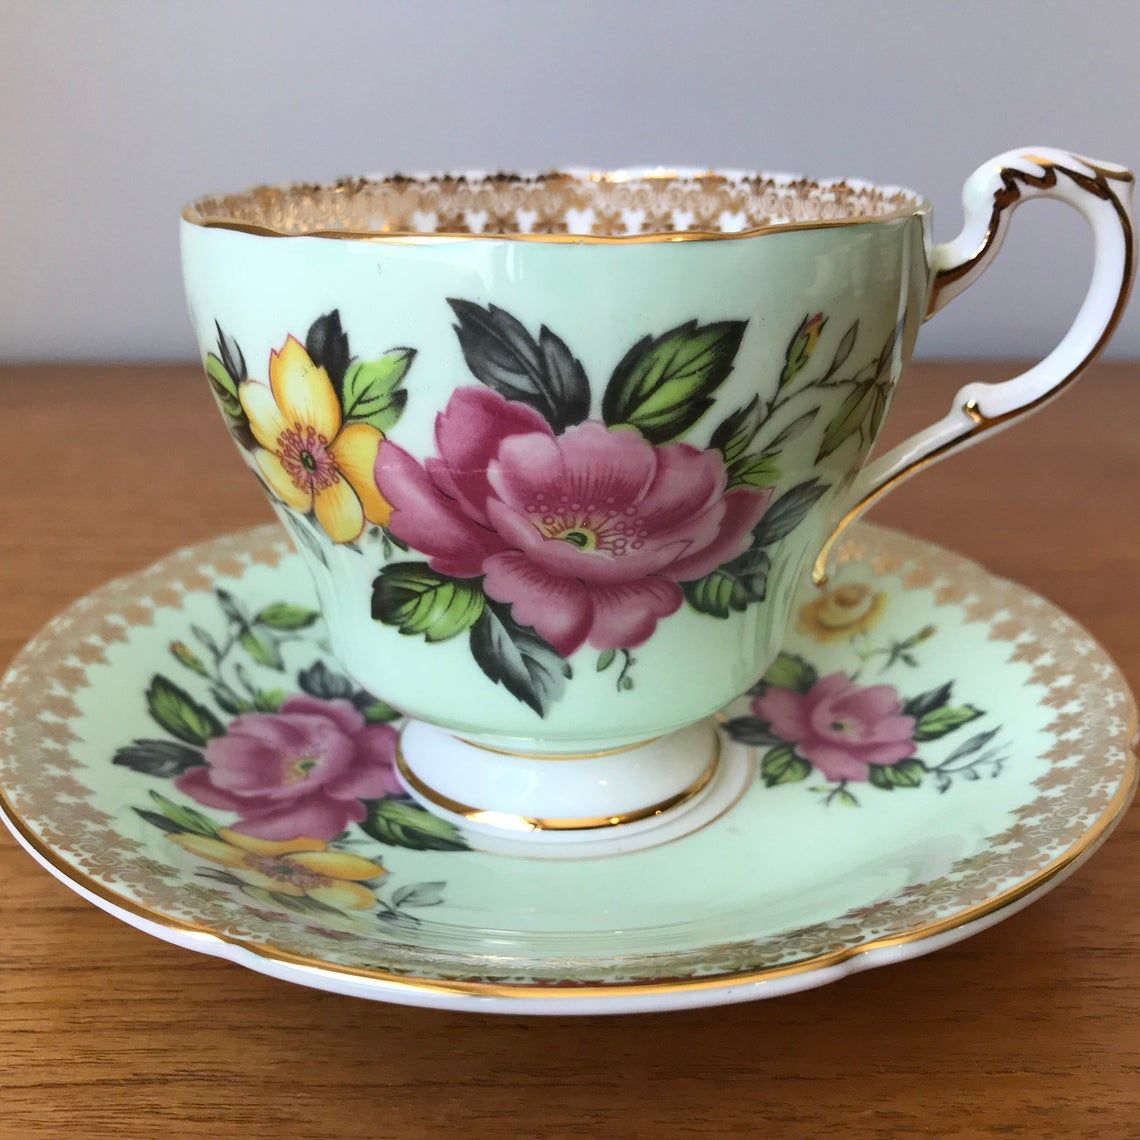 Paragon Mint Green Teacup and Saucer, Pink and Yellow Flower Tea Cup and Saucer, Vintage Bone China